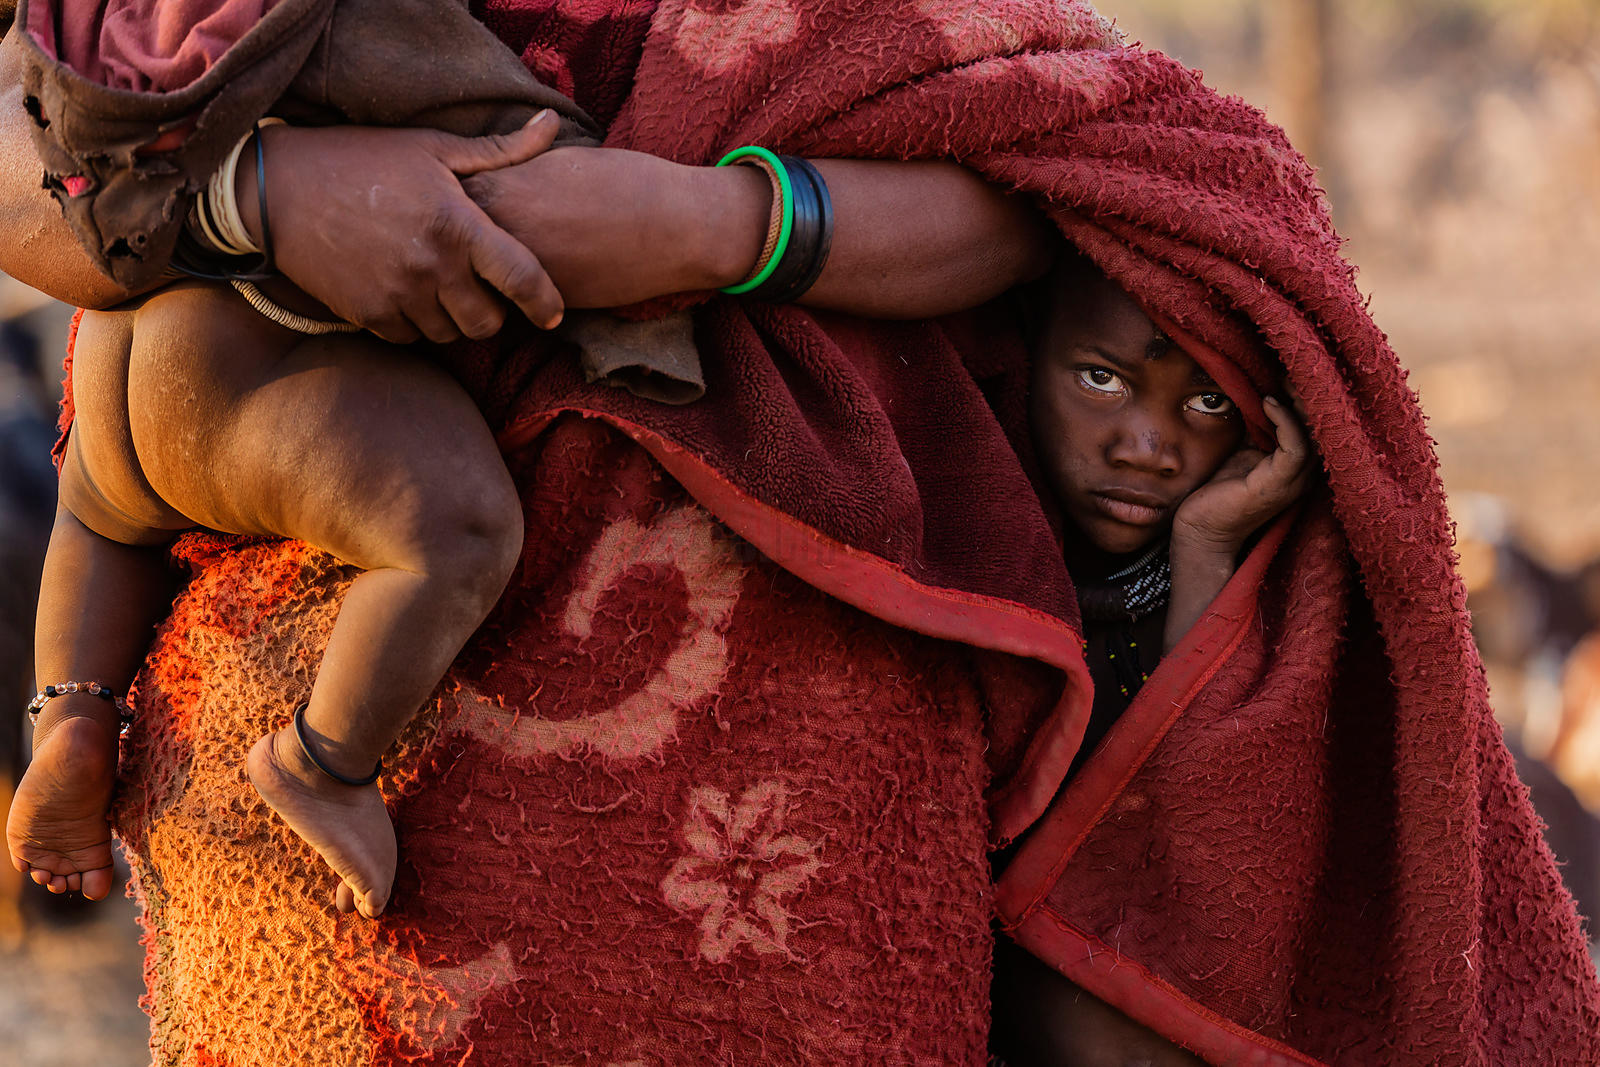 Portrait of a Young Himba Boy Peeping out from the Folds of his Mother's Blanket